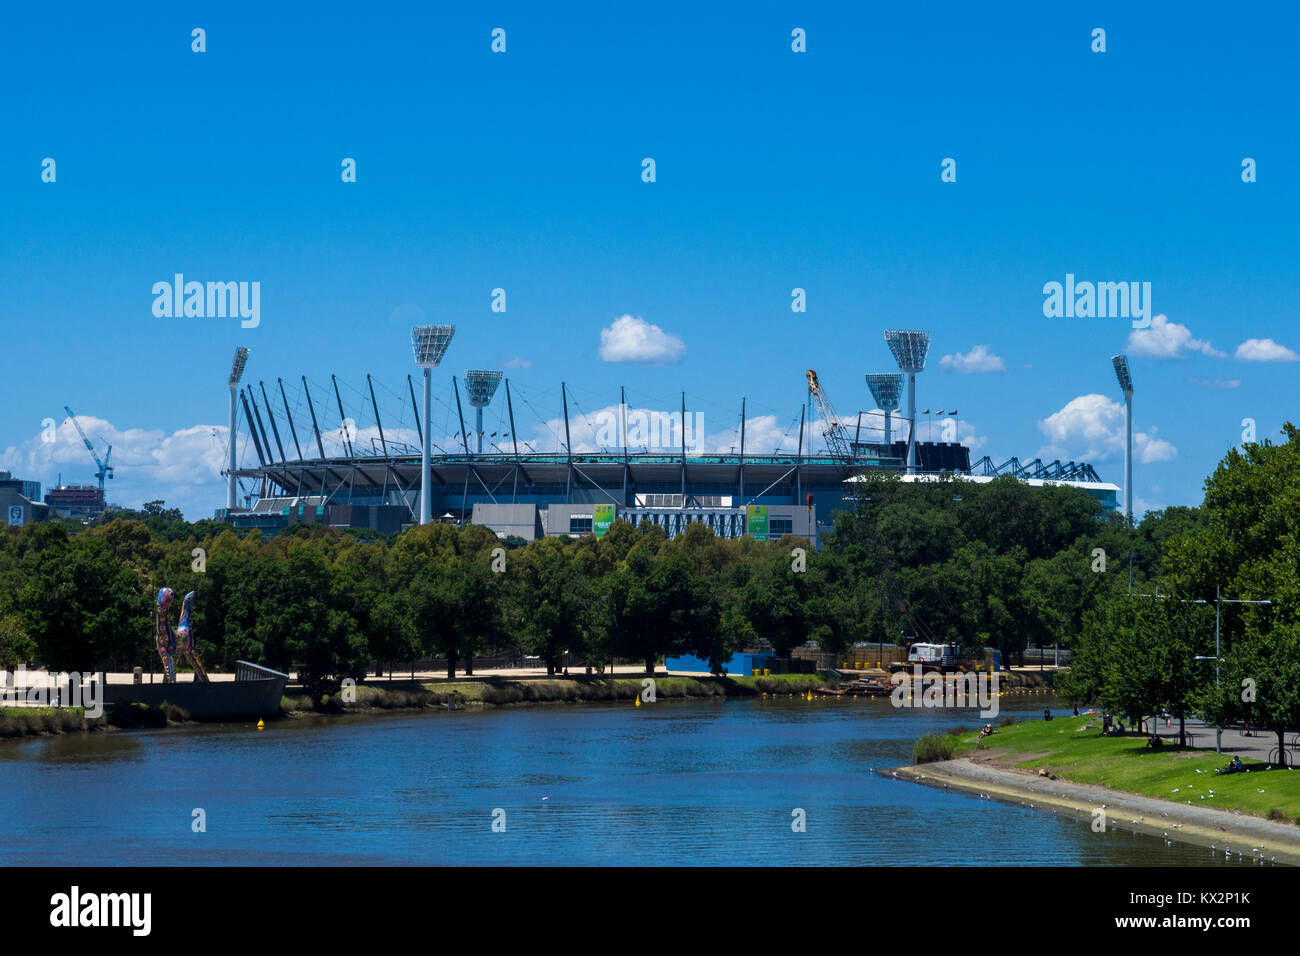 The Yarra river and the Melbourne Cricket Ground (MCG), Melbourne, Victoria, Australia. - Stock Image